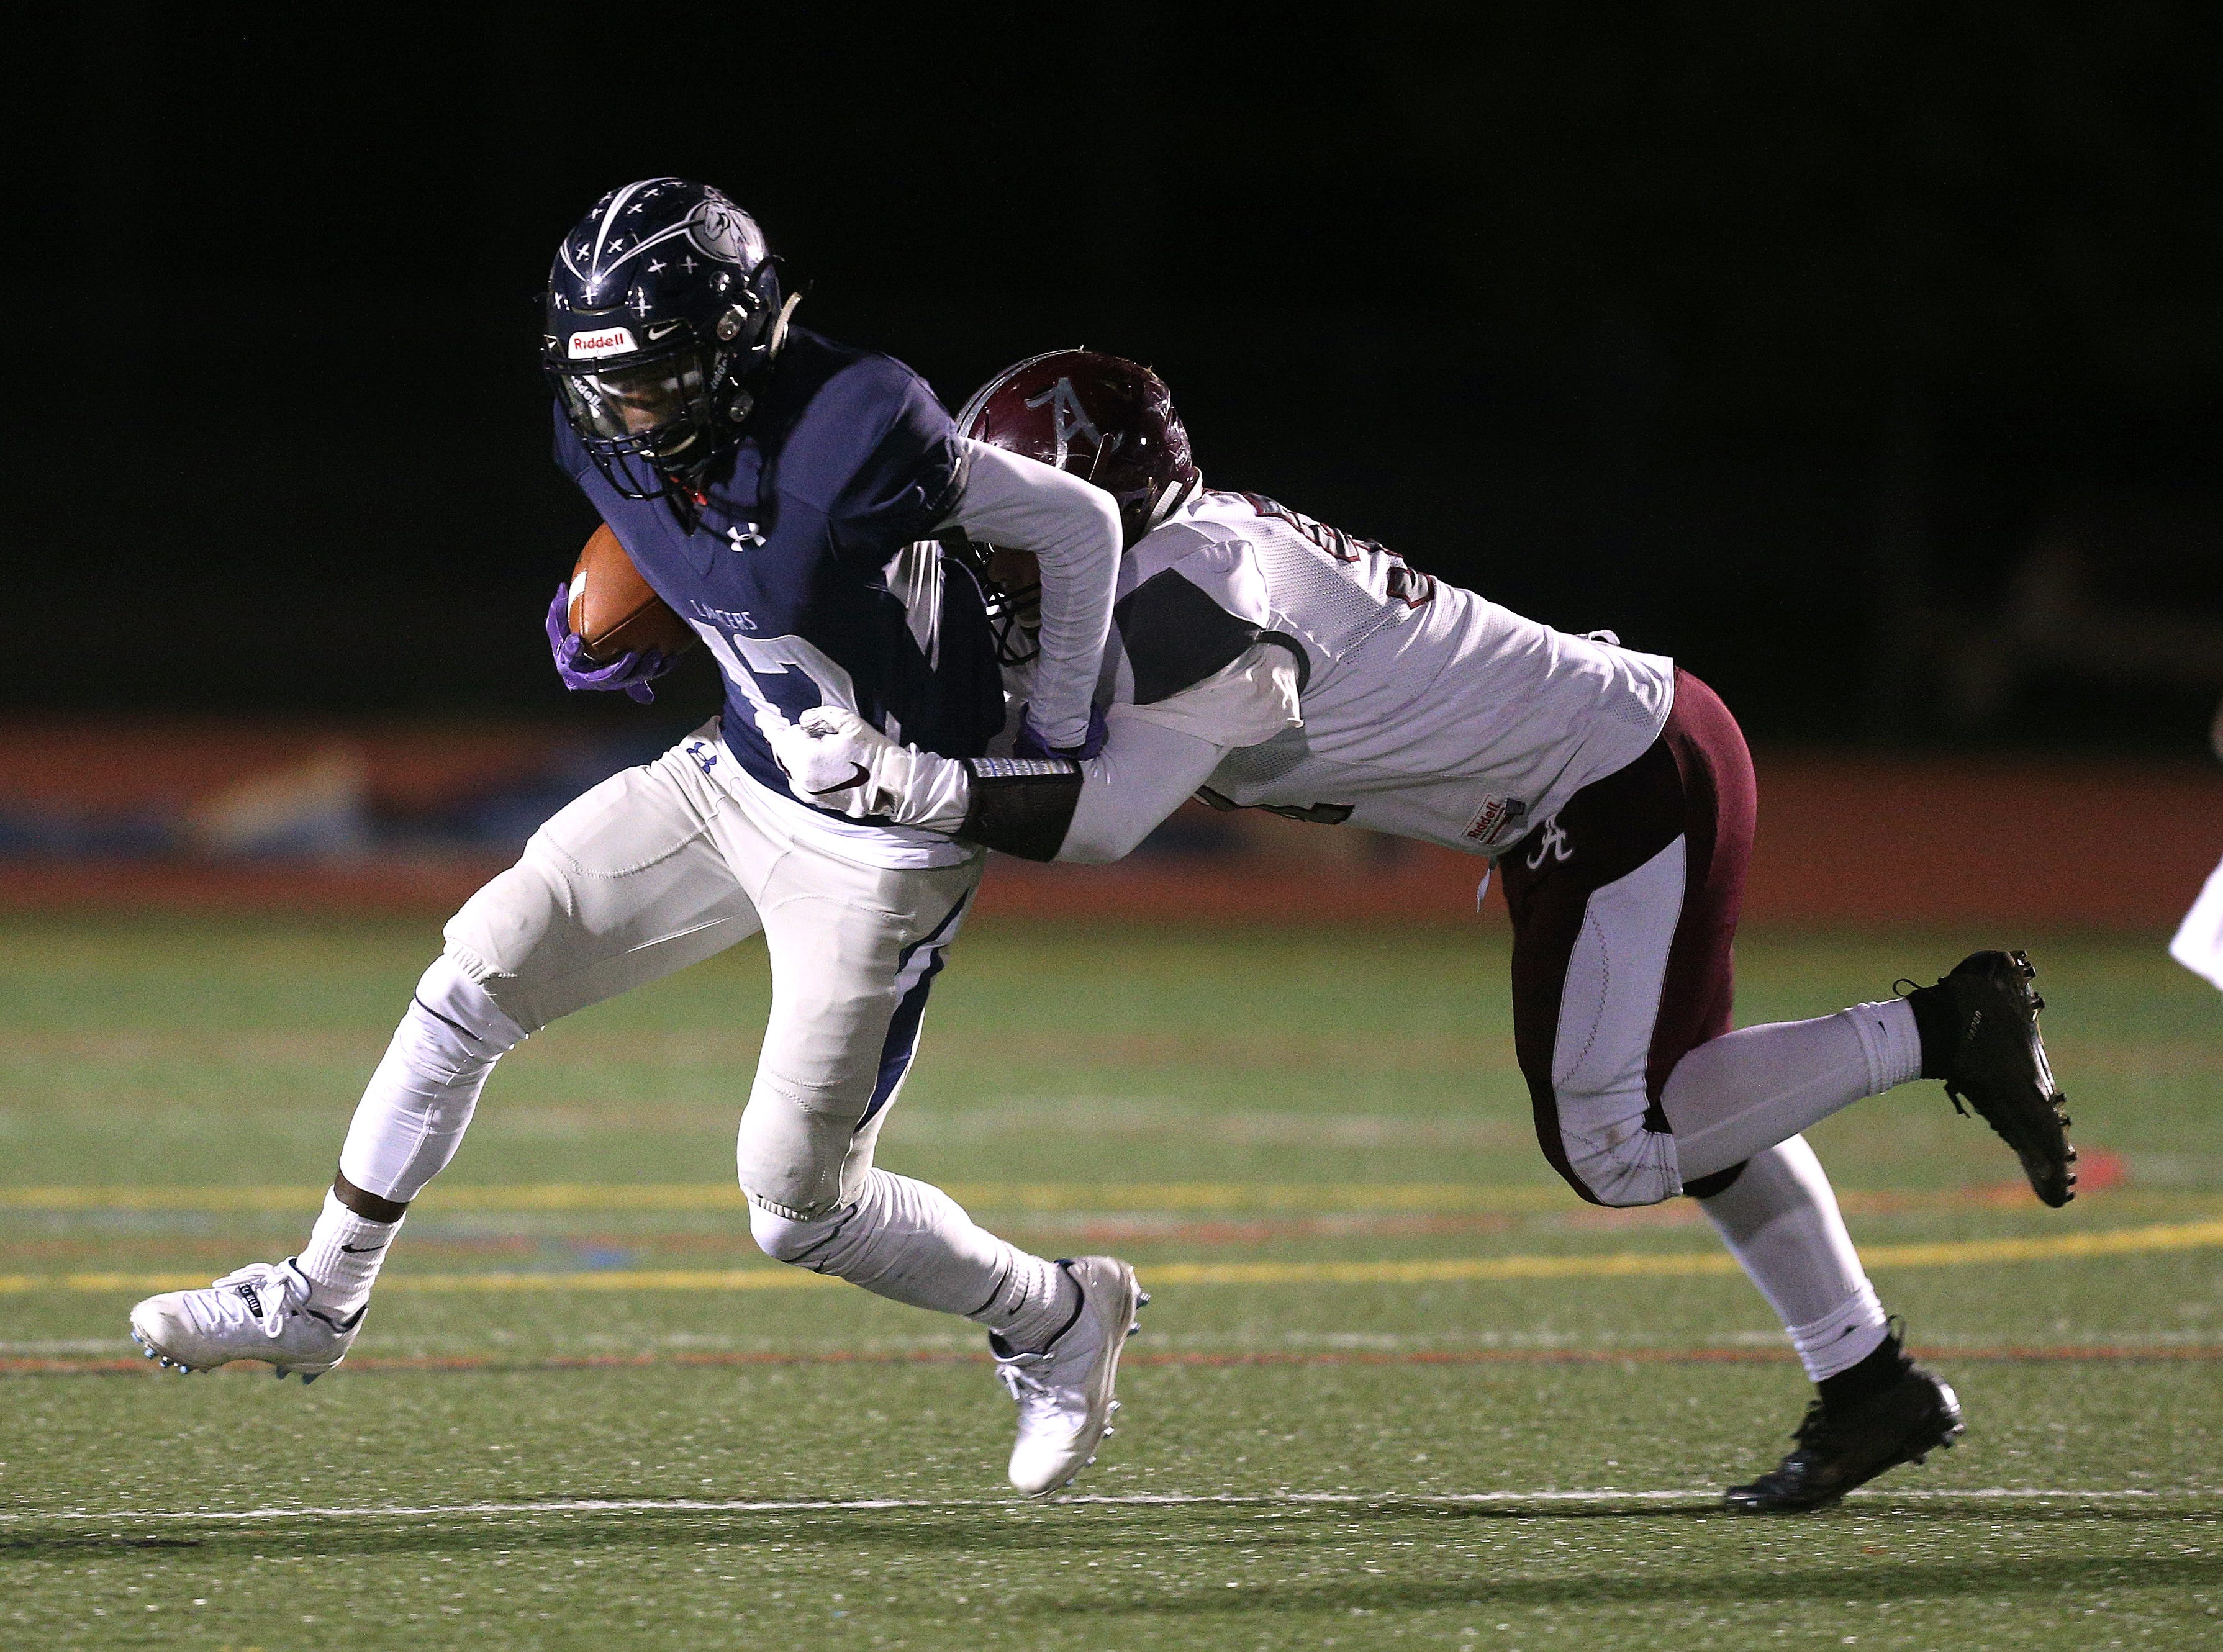 Eastridge's Jalen Rose Hannah is tackled by Arcadia's Alex Testa.